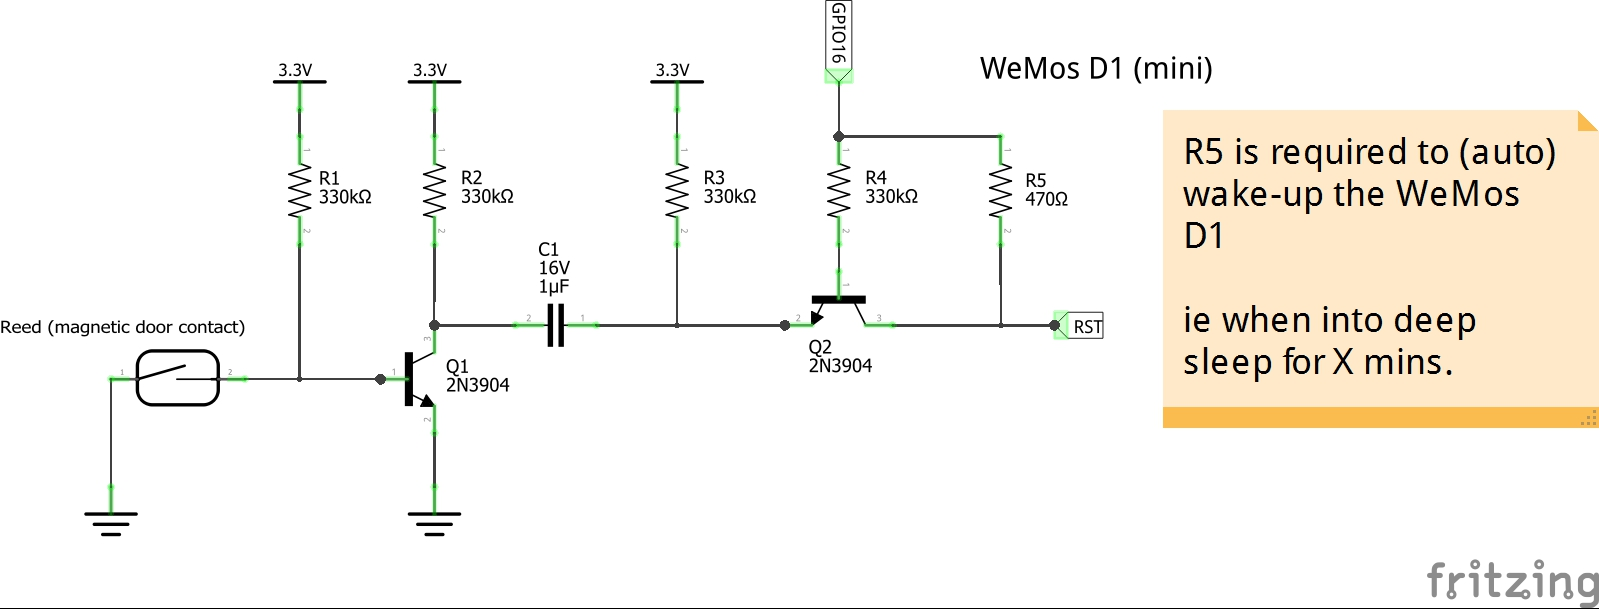 Working on external interrupt (wake-up) with WeMos D1 - Everything